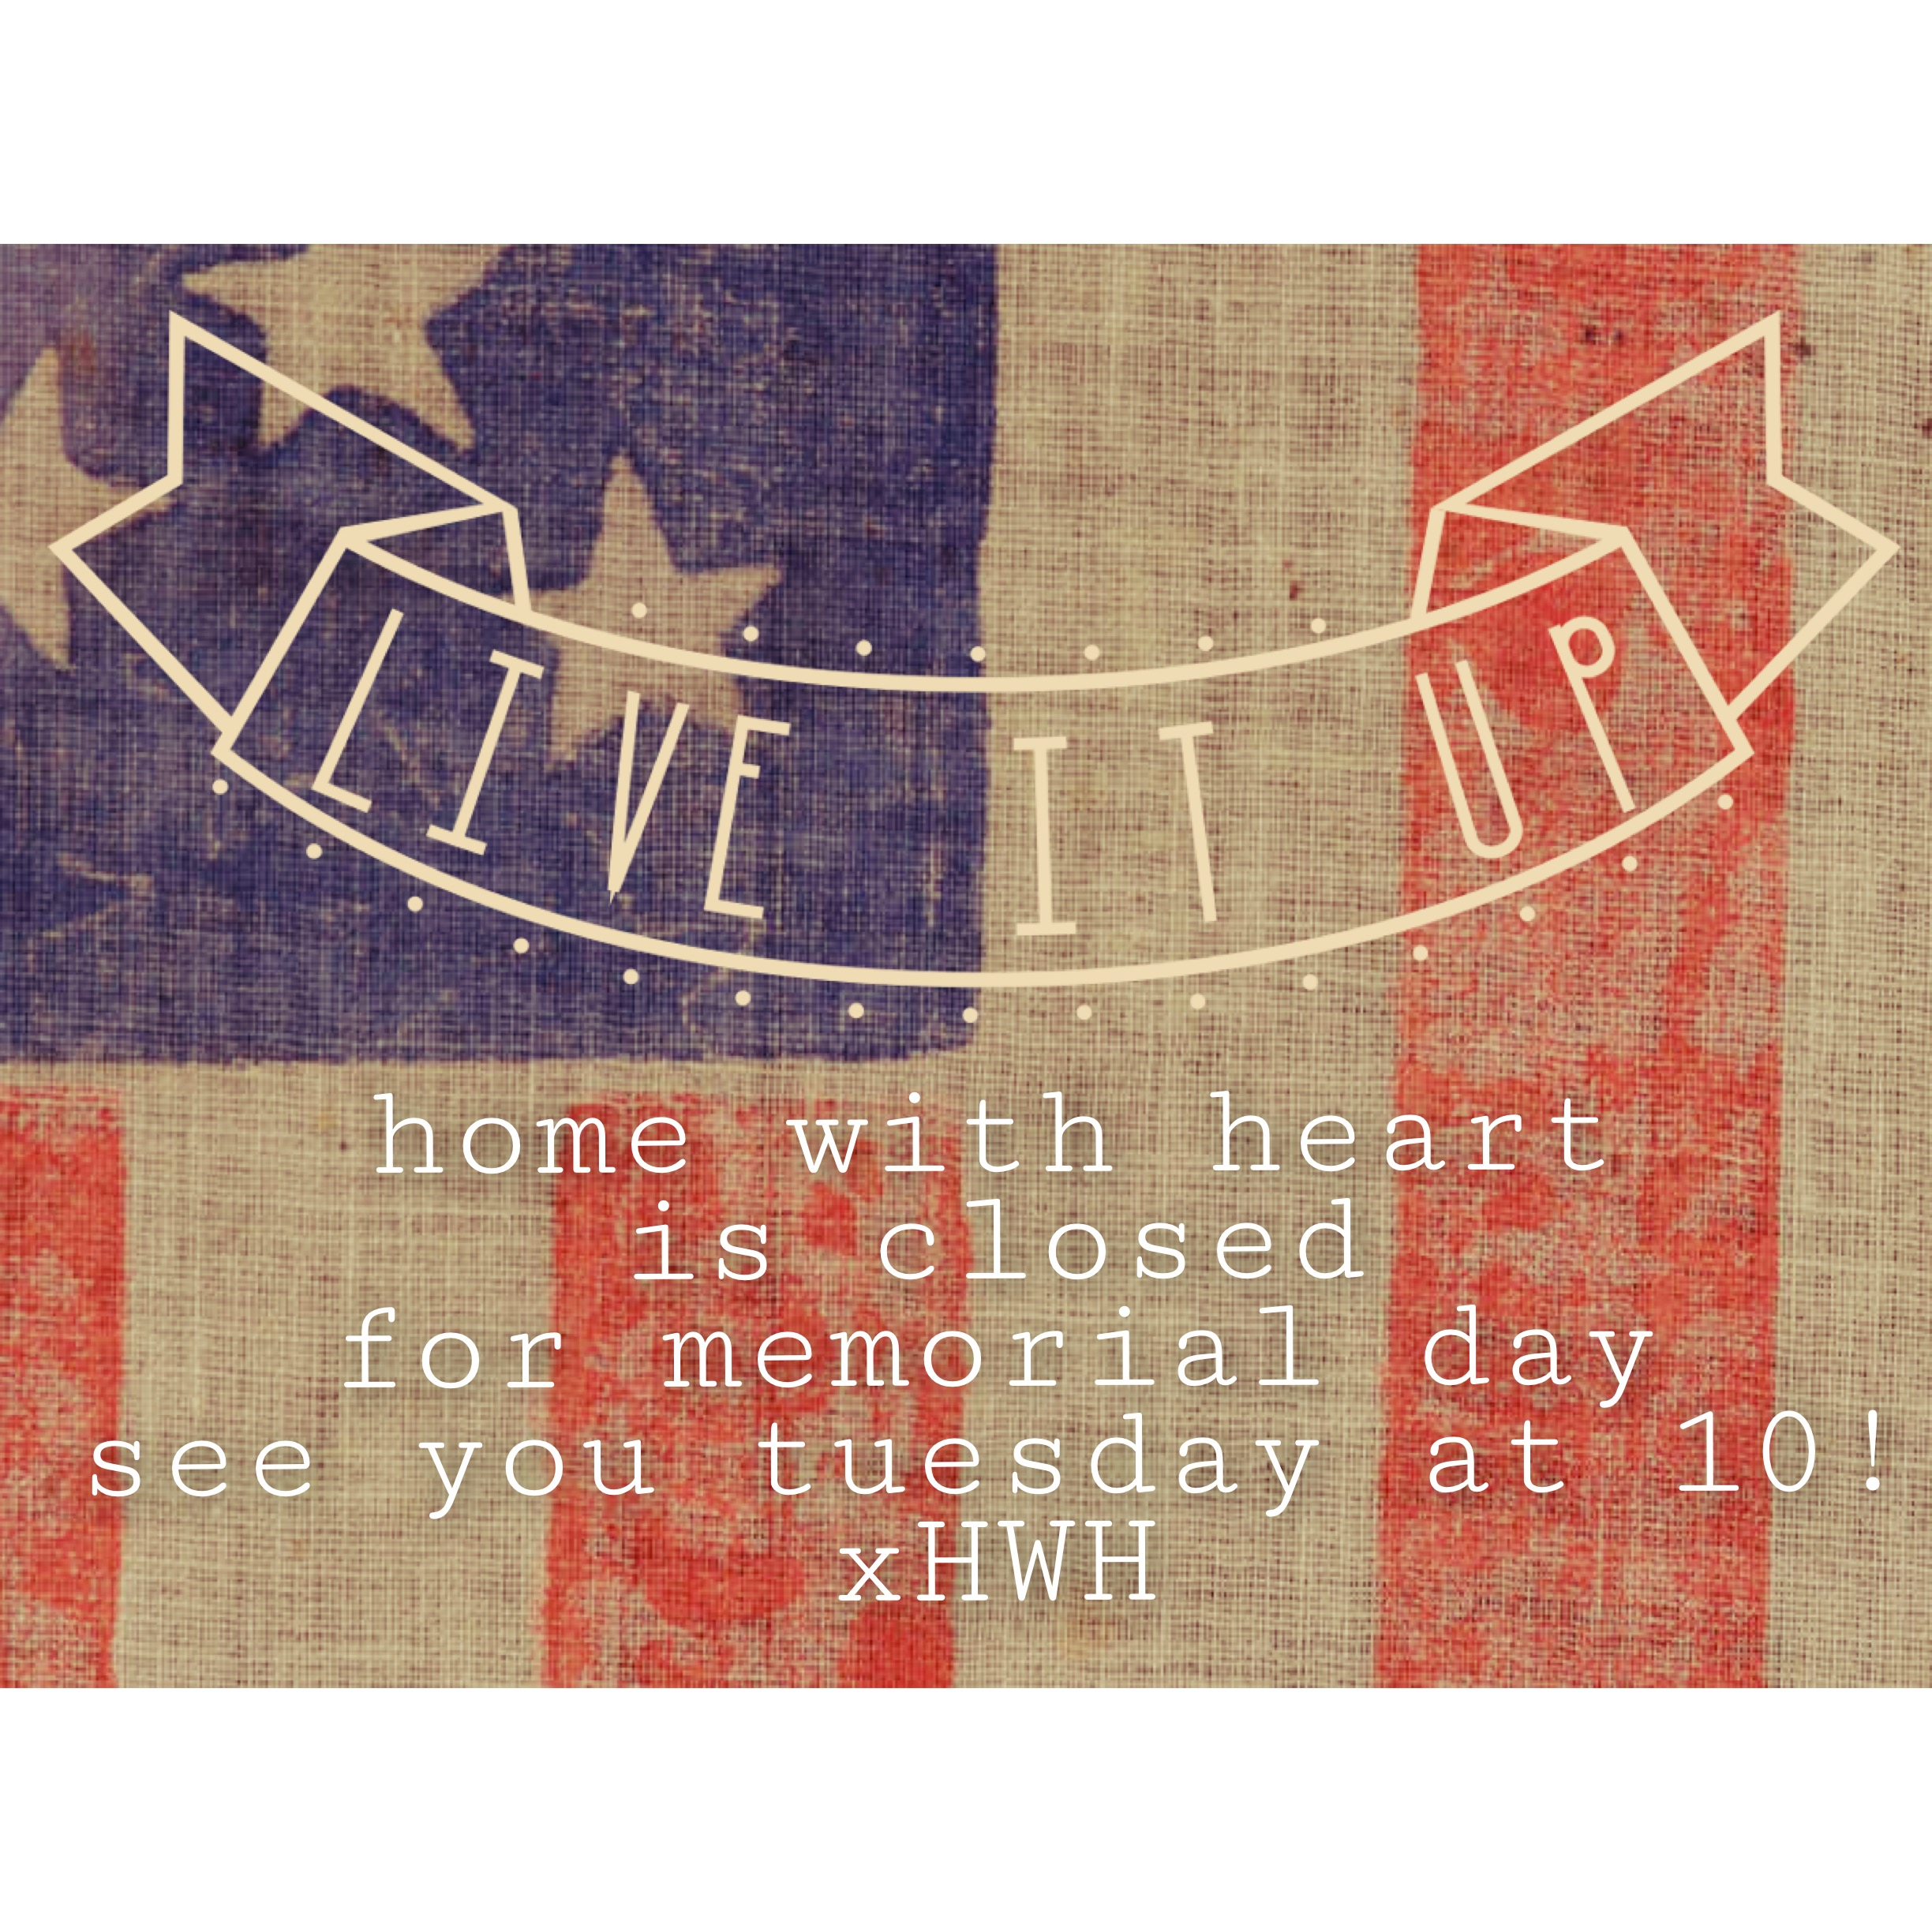 we'll be closed saturday, sunday and monday, and will reopen at 10:00am on tuesday. until then, have a wonderful weekend! xxla